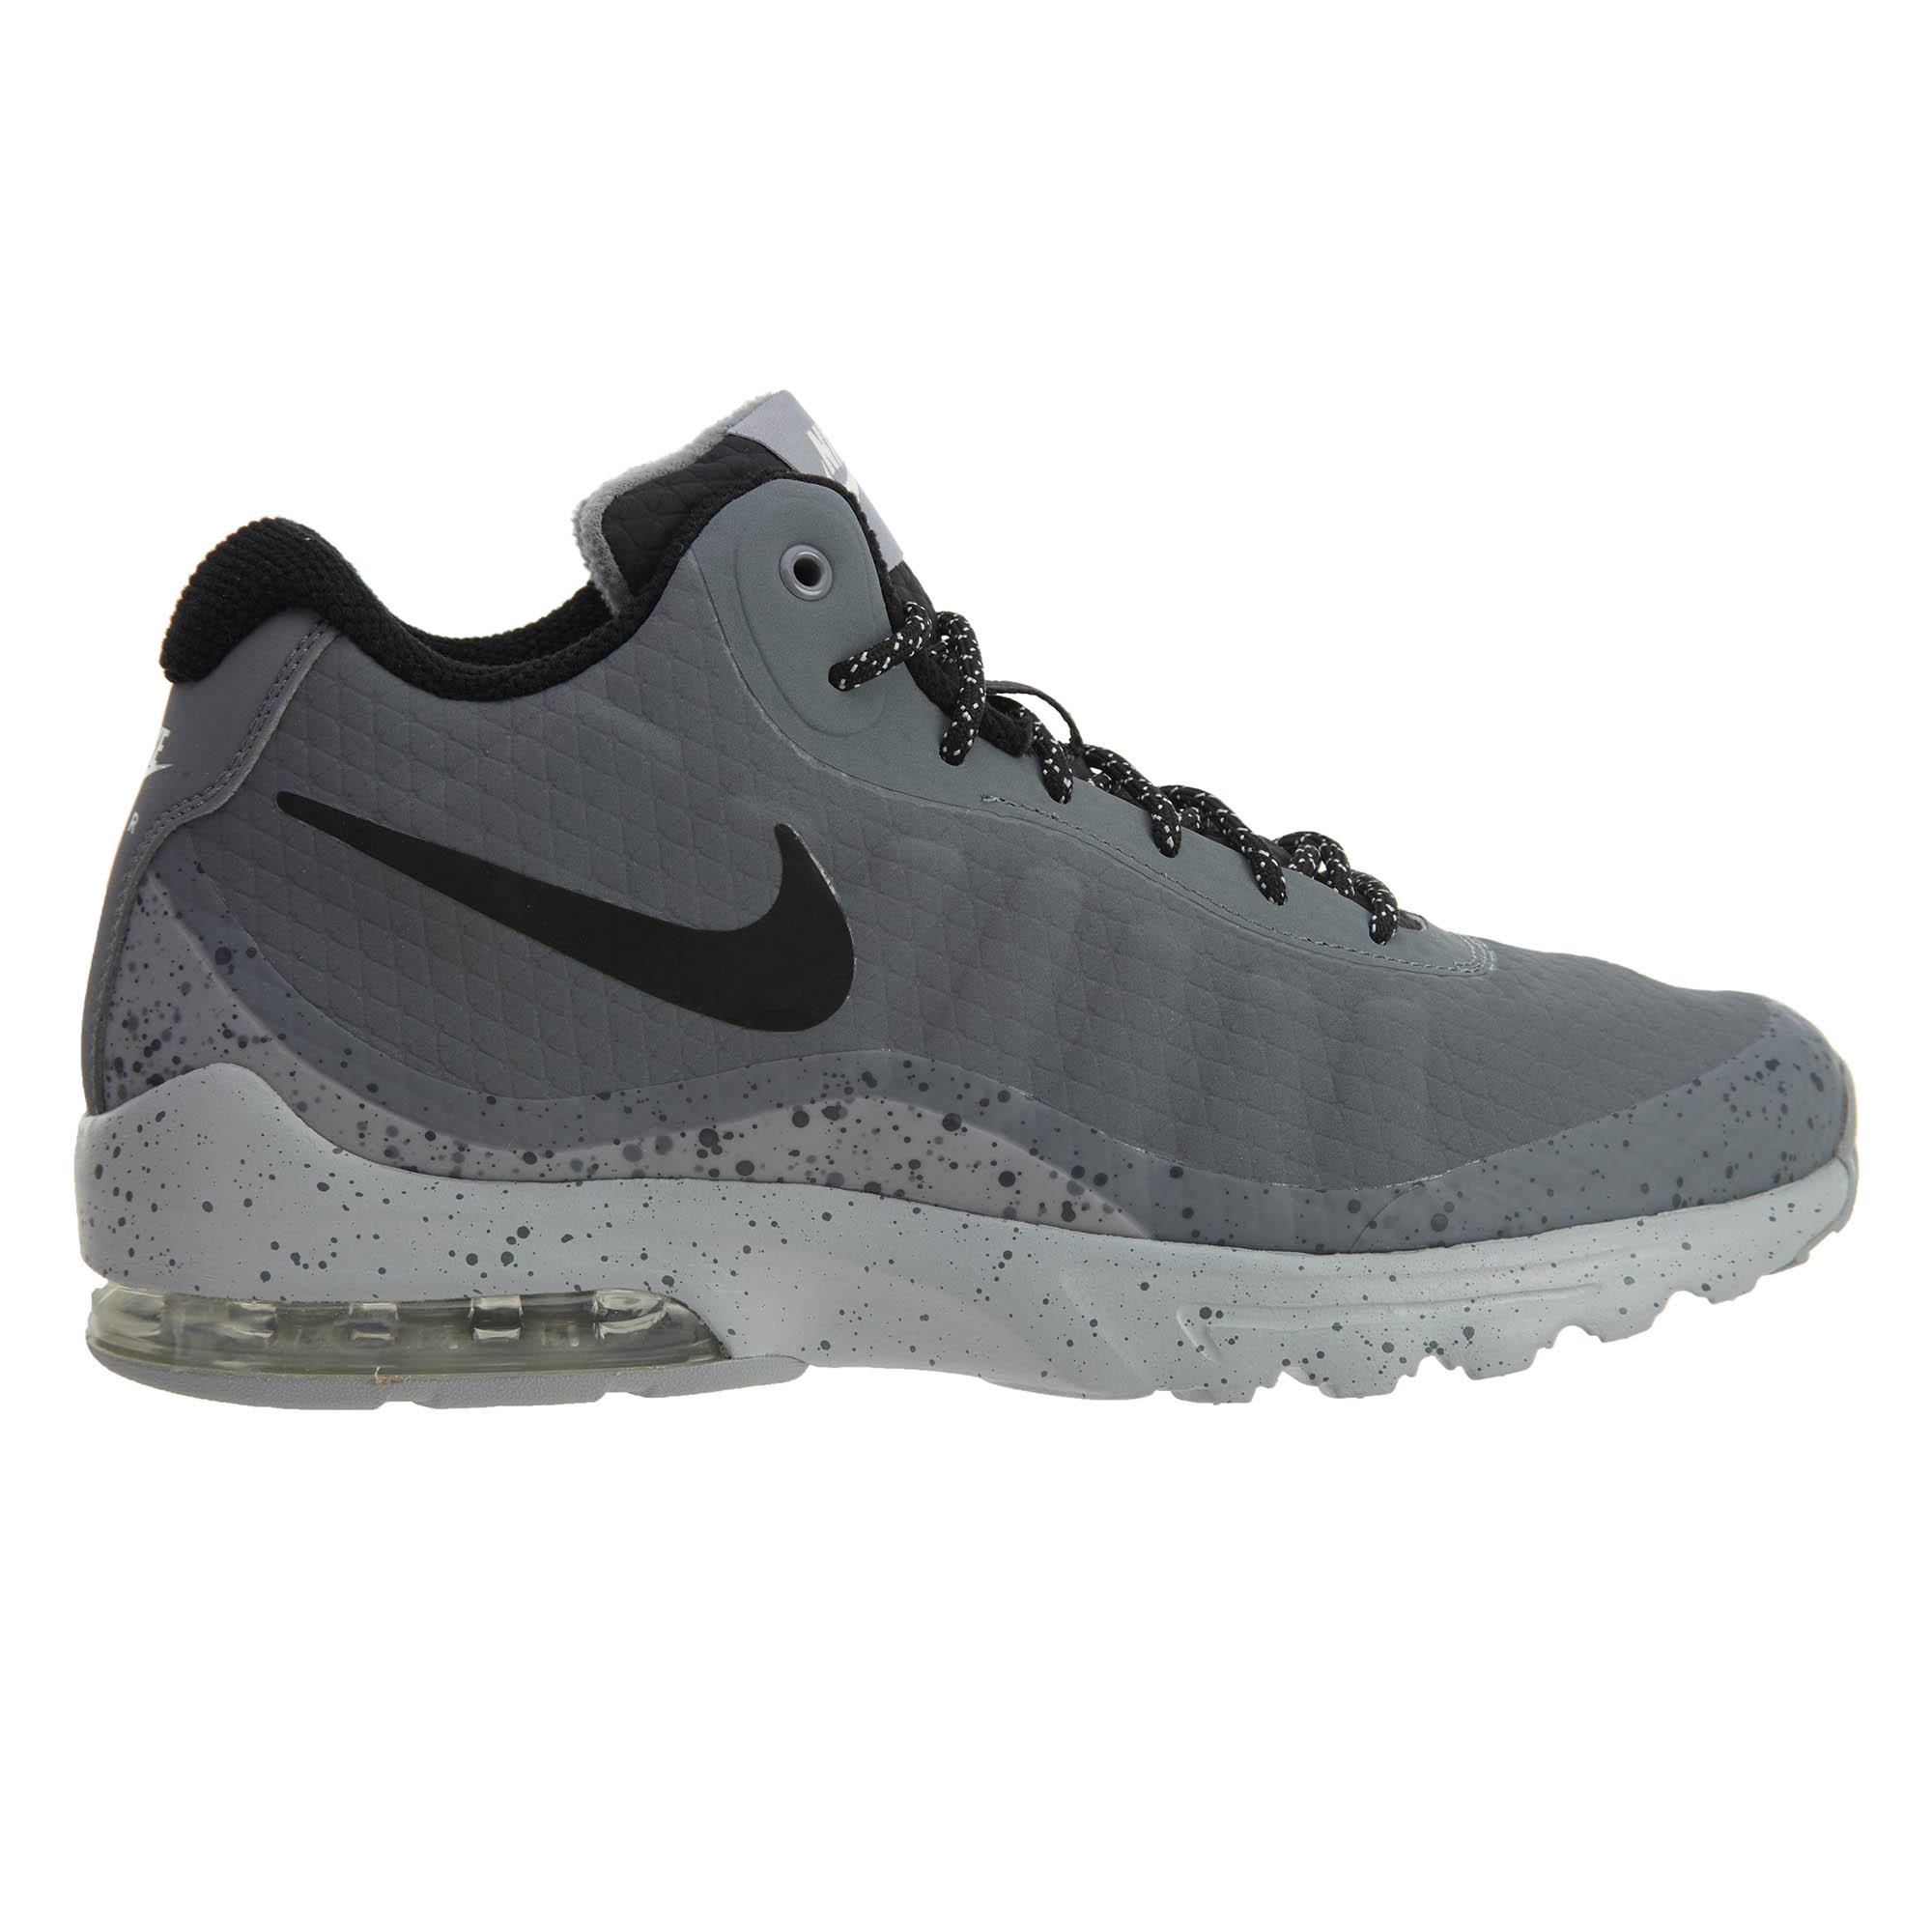 Nike Air Max Invigor Mid Cool Grey/Black-Wolf Grey